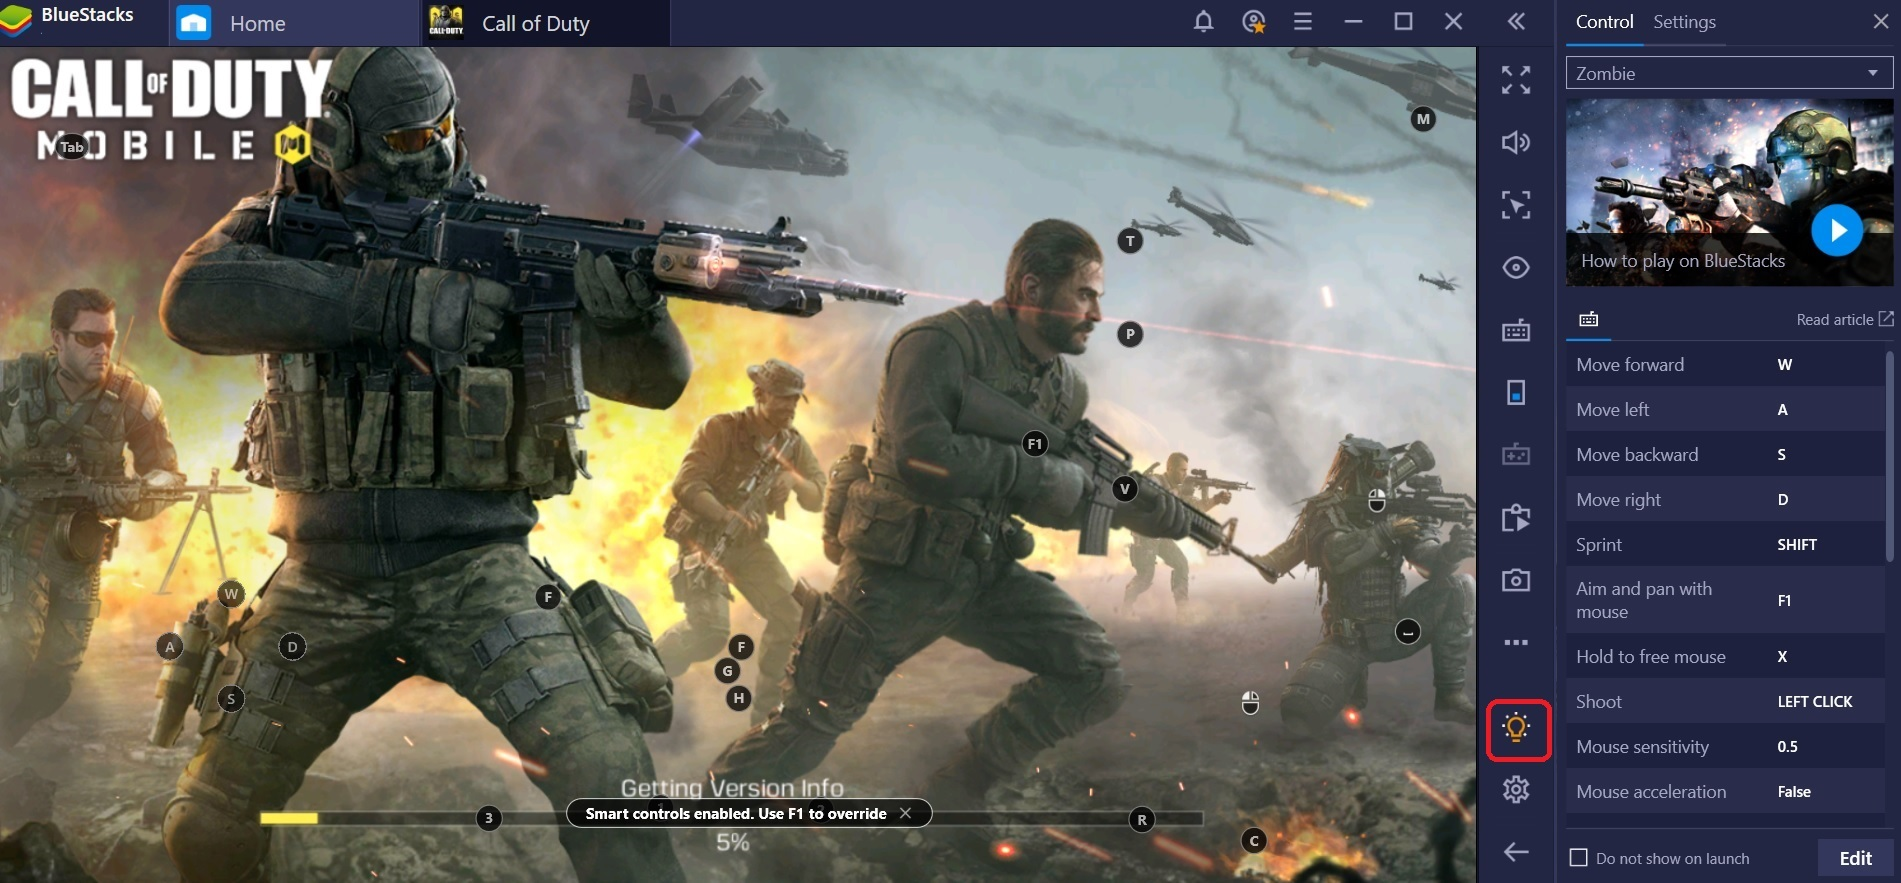 Bluestacks 4 160 Keyboard Controls For Call Of Duty